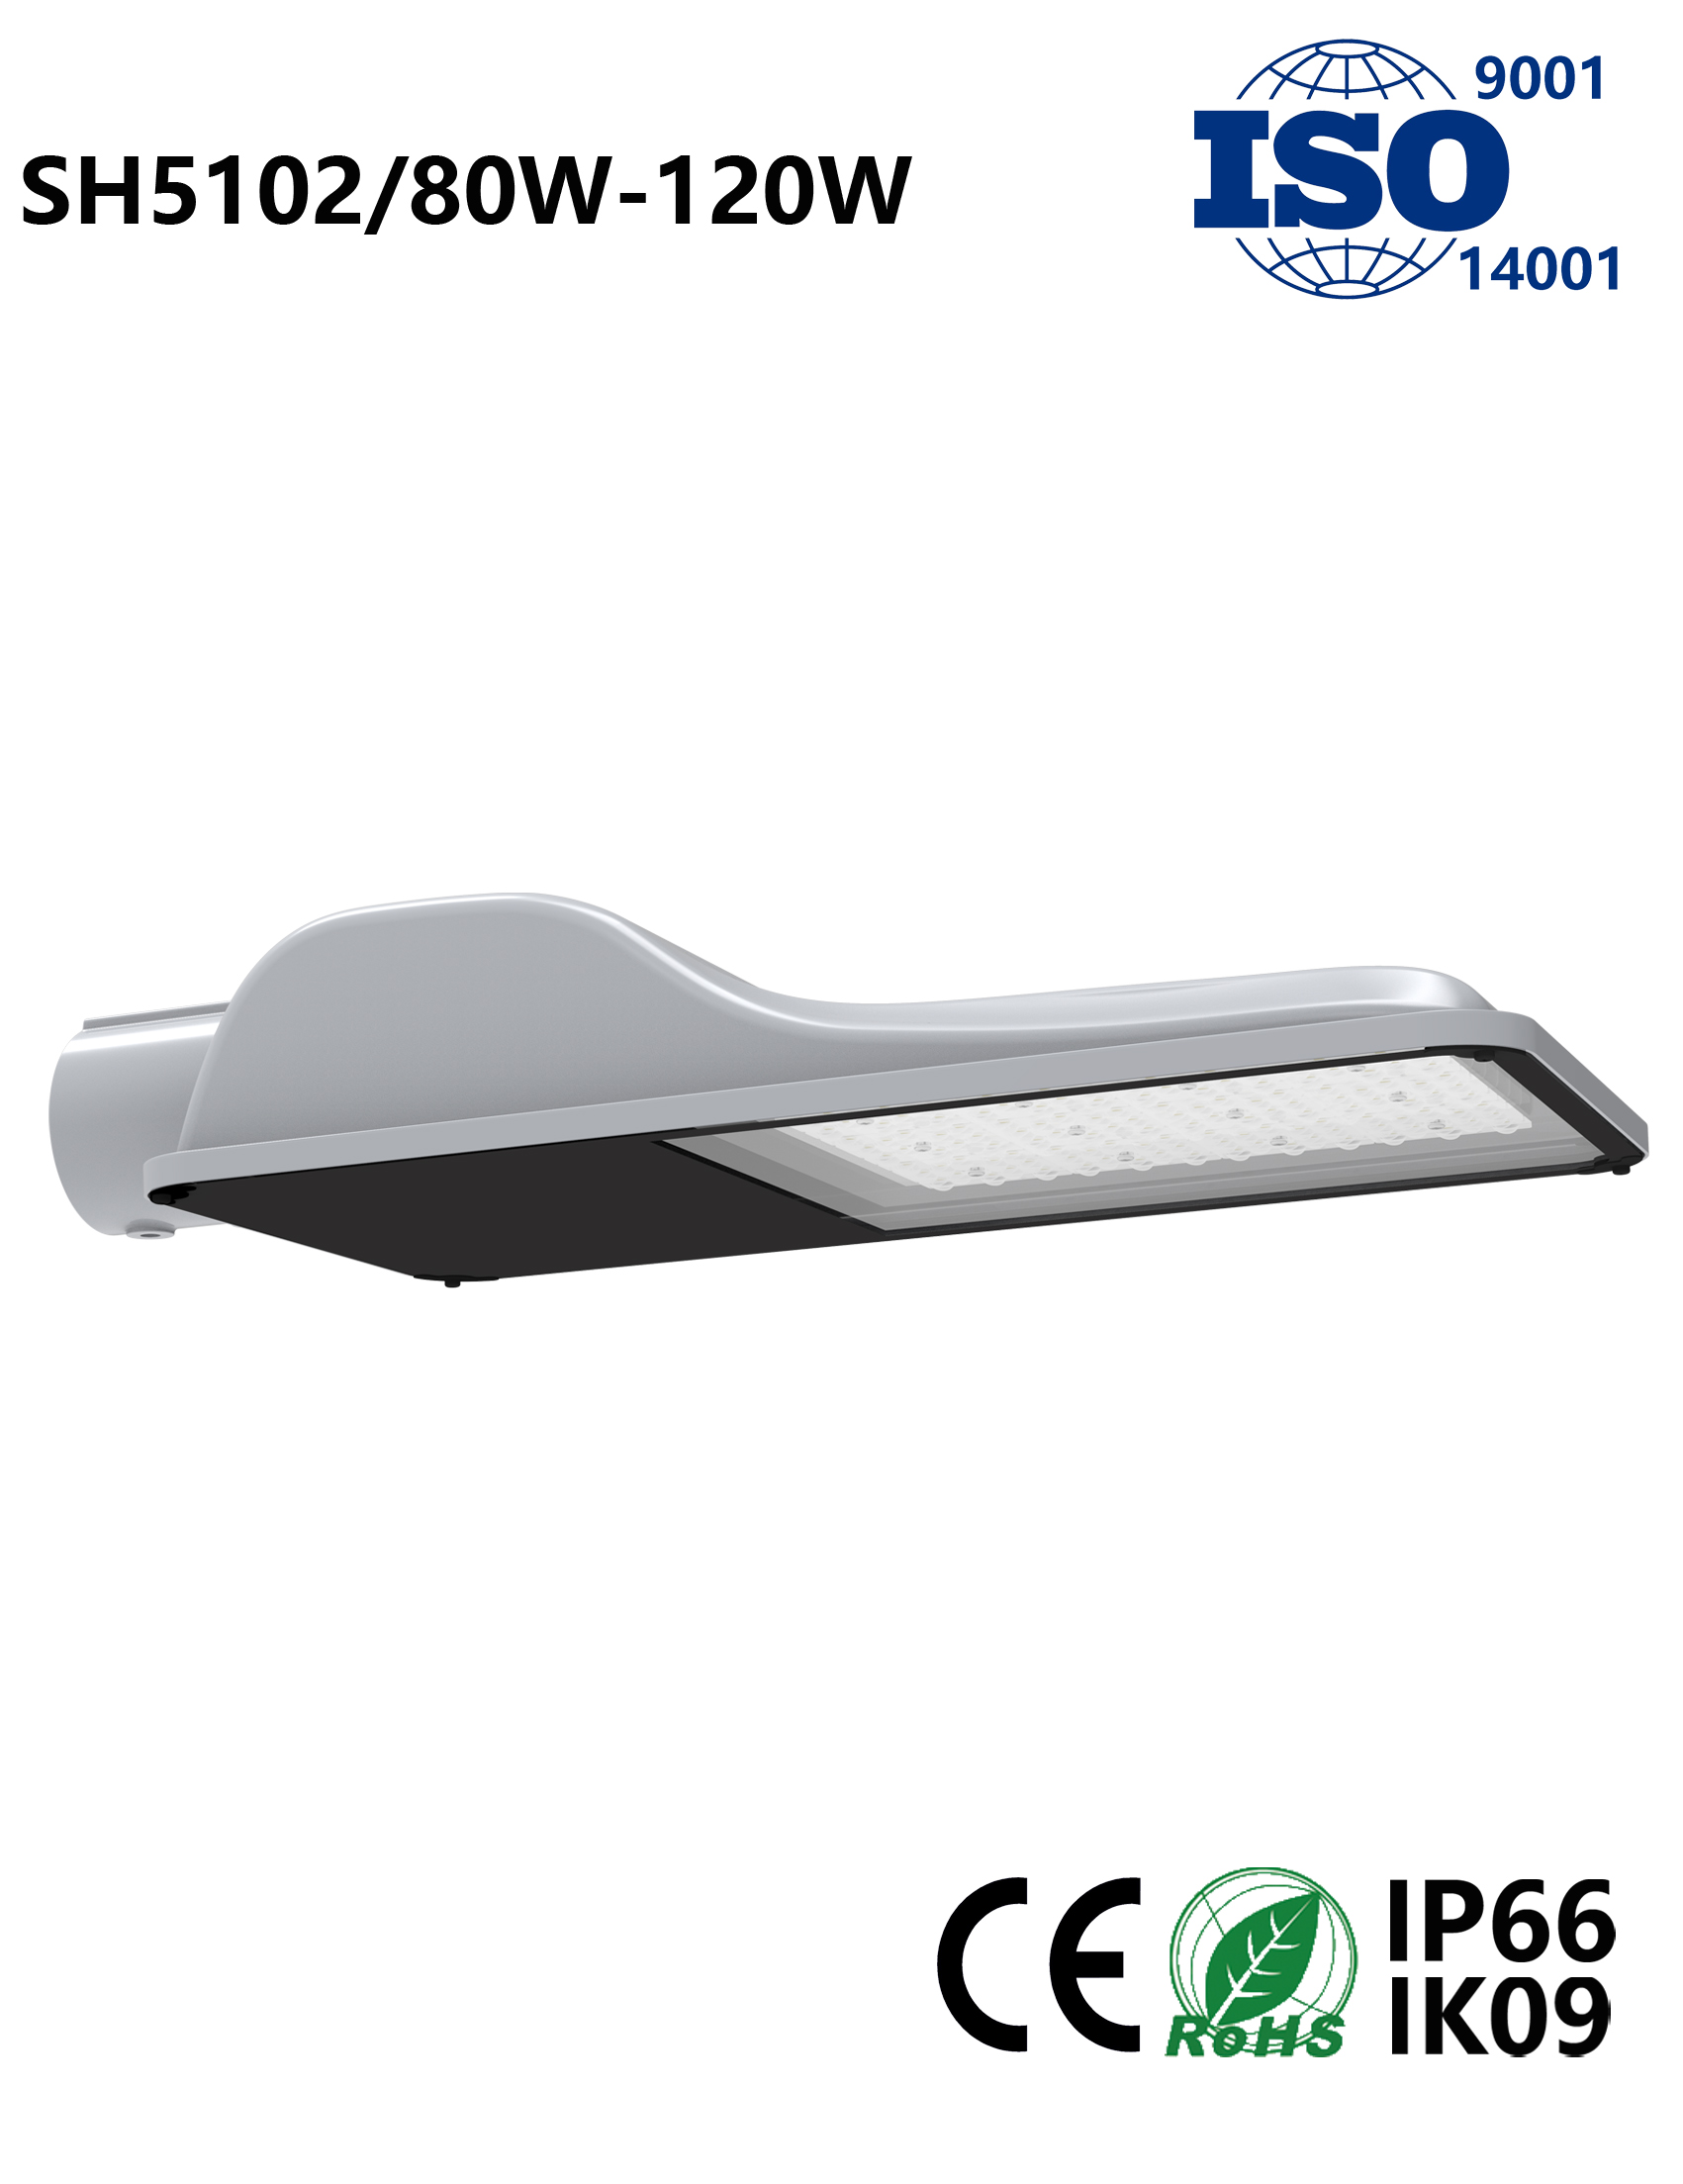 SH5102 80W-120W LED Street Light